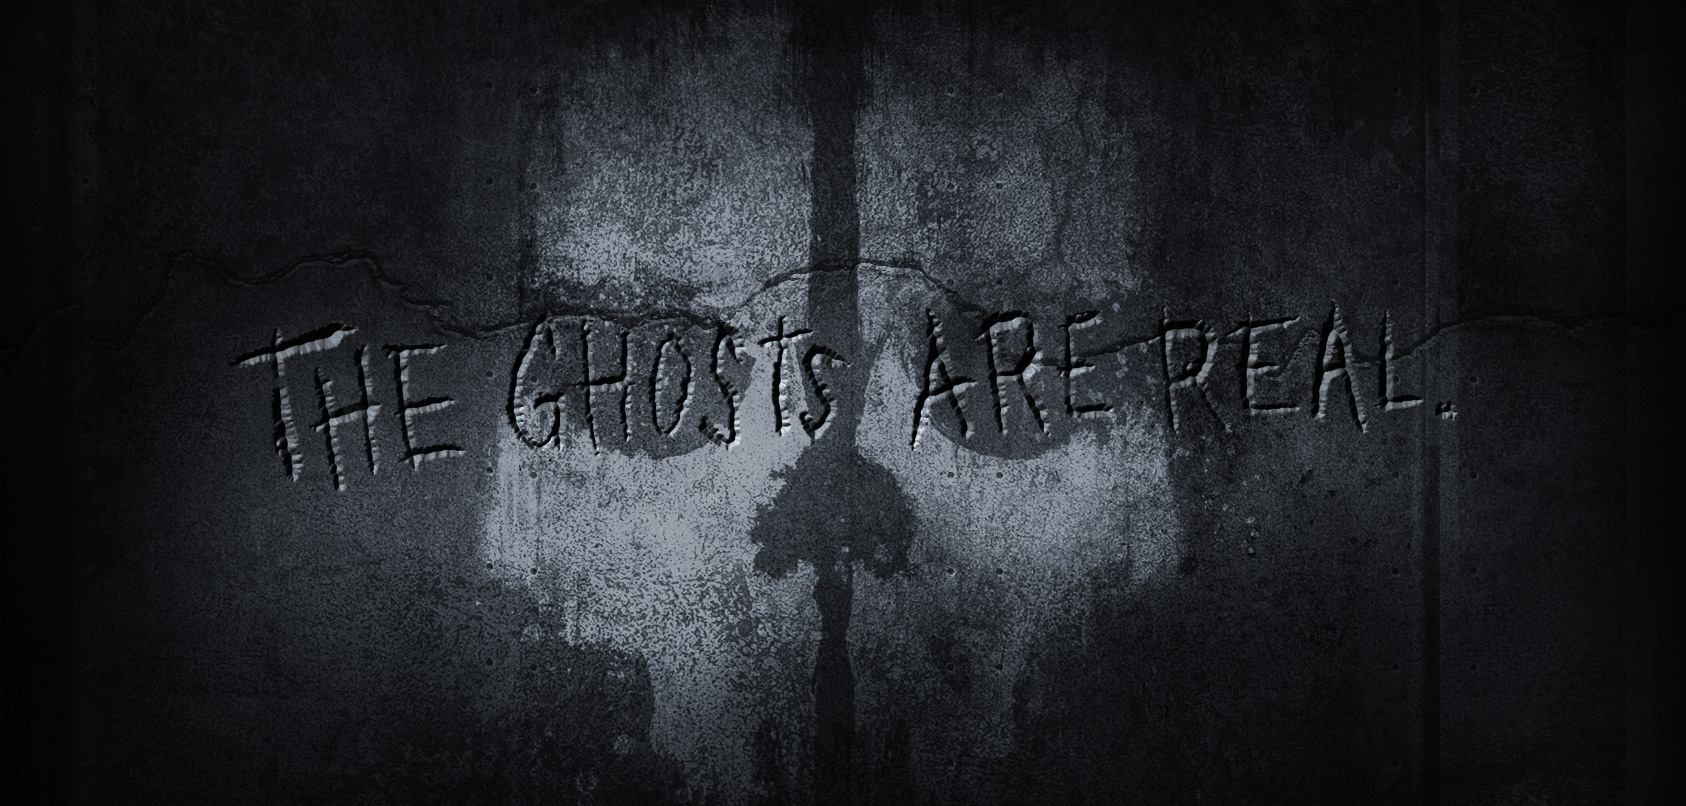 Call Of Duty Ghosts Backgrounds for PC - Full HD Amazing Pics ...